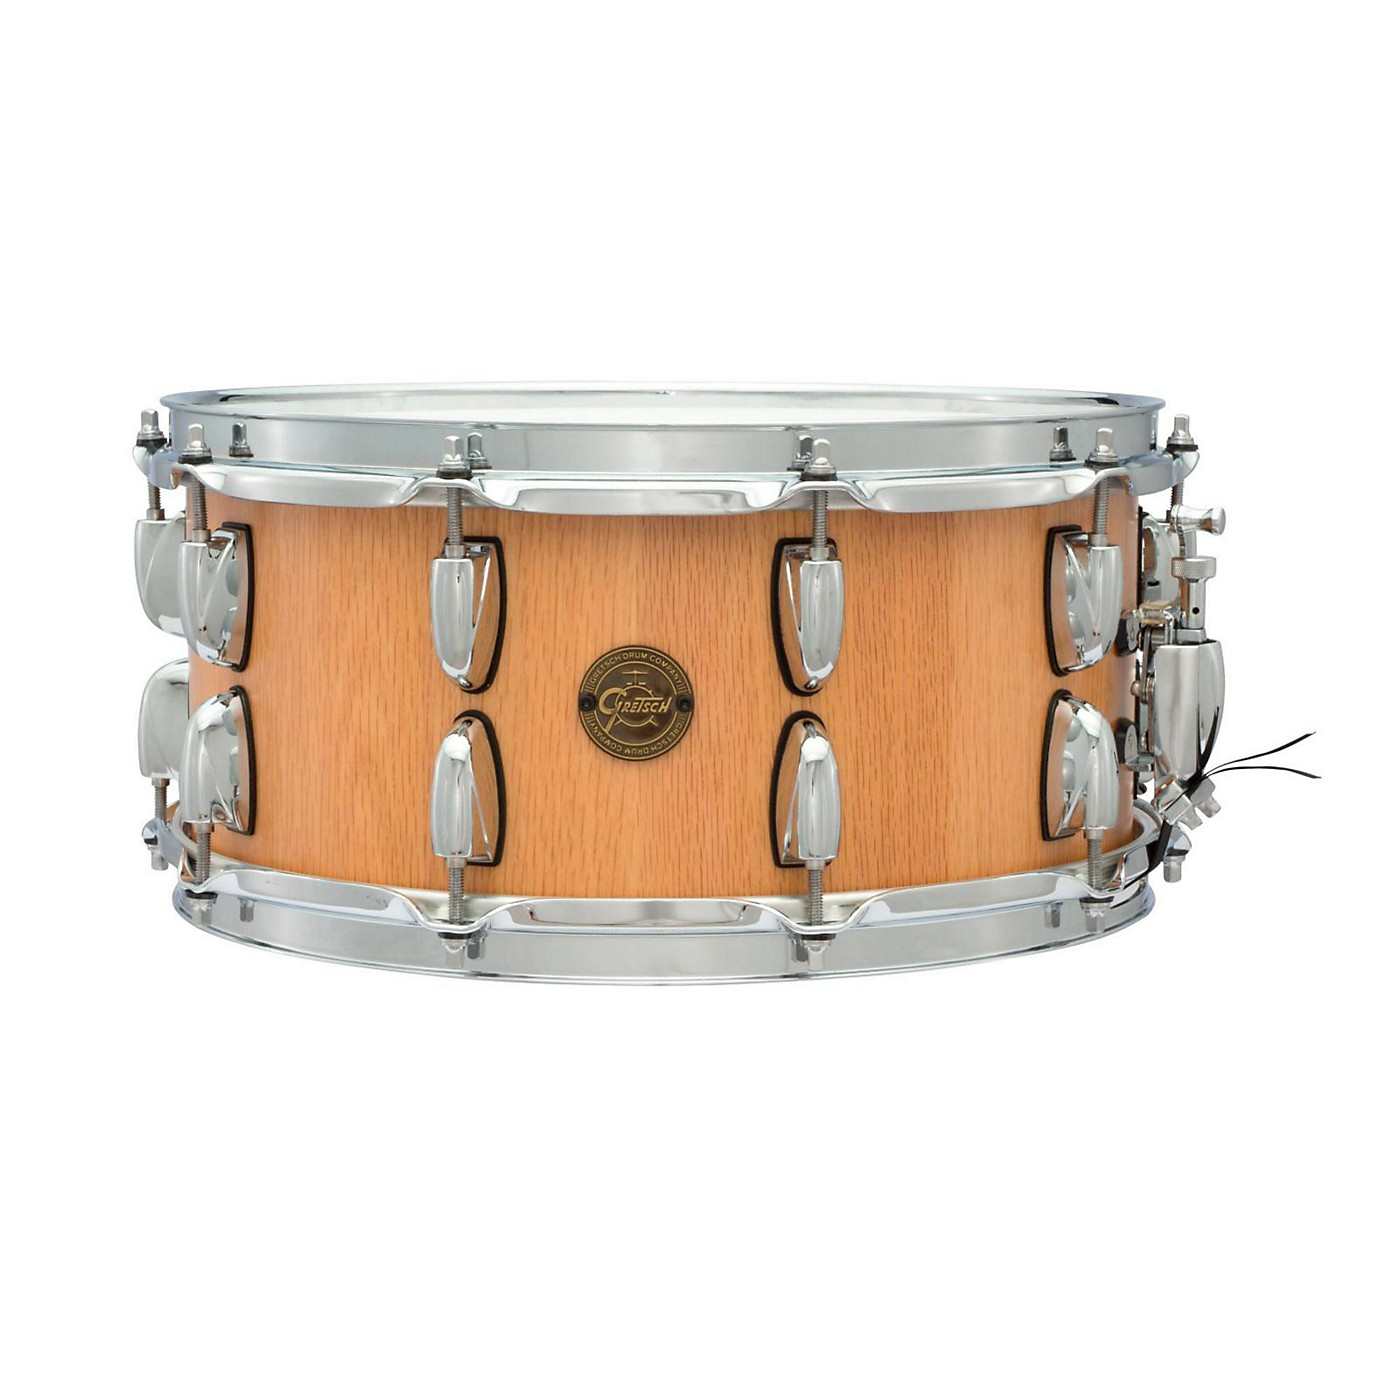 Gretsch Drums Gold Series Oak Stave Snare Drum thumbnail